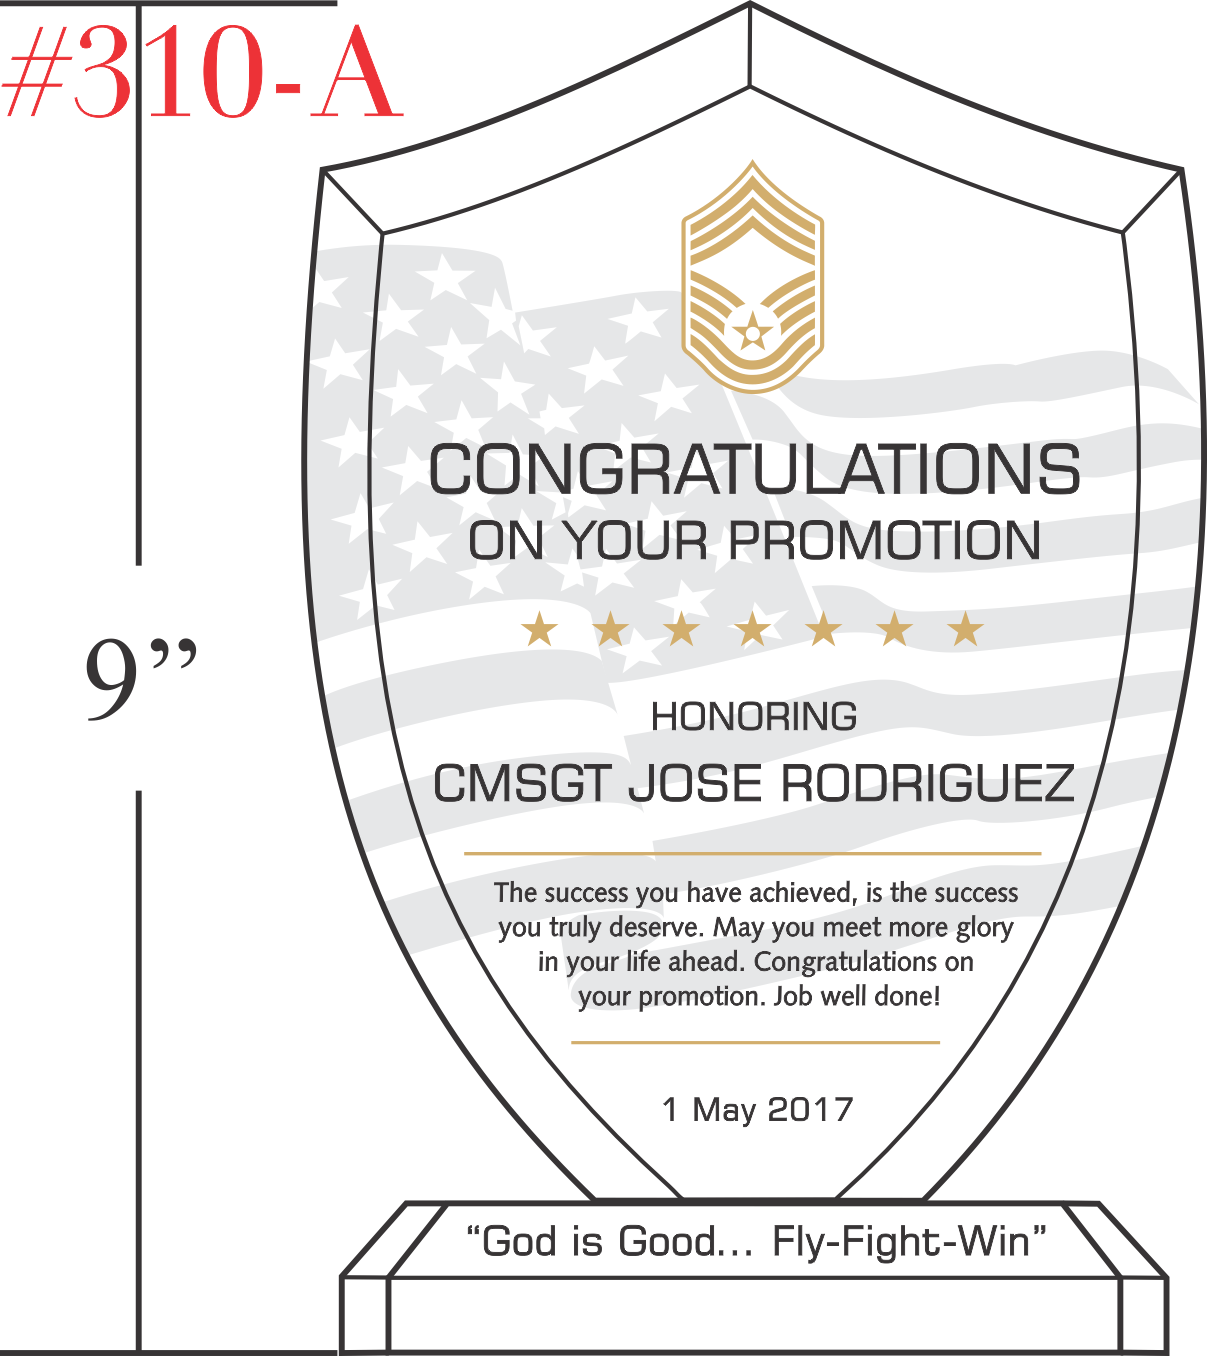 USAF Congratulations on Promotion Gift